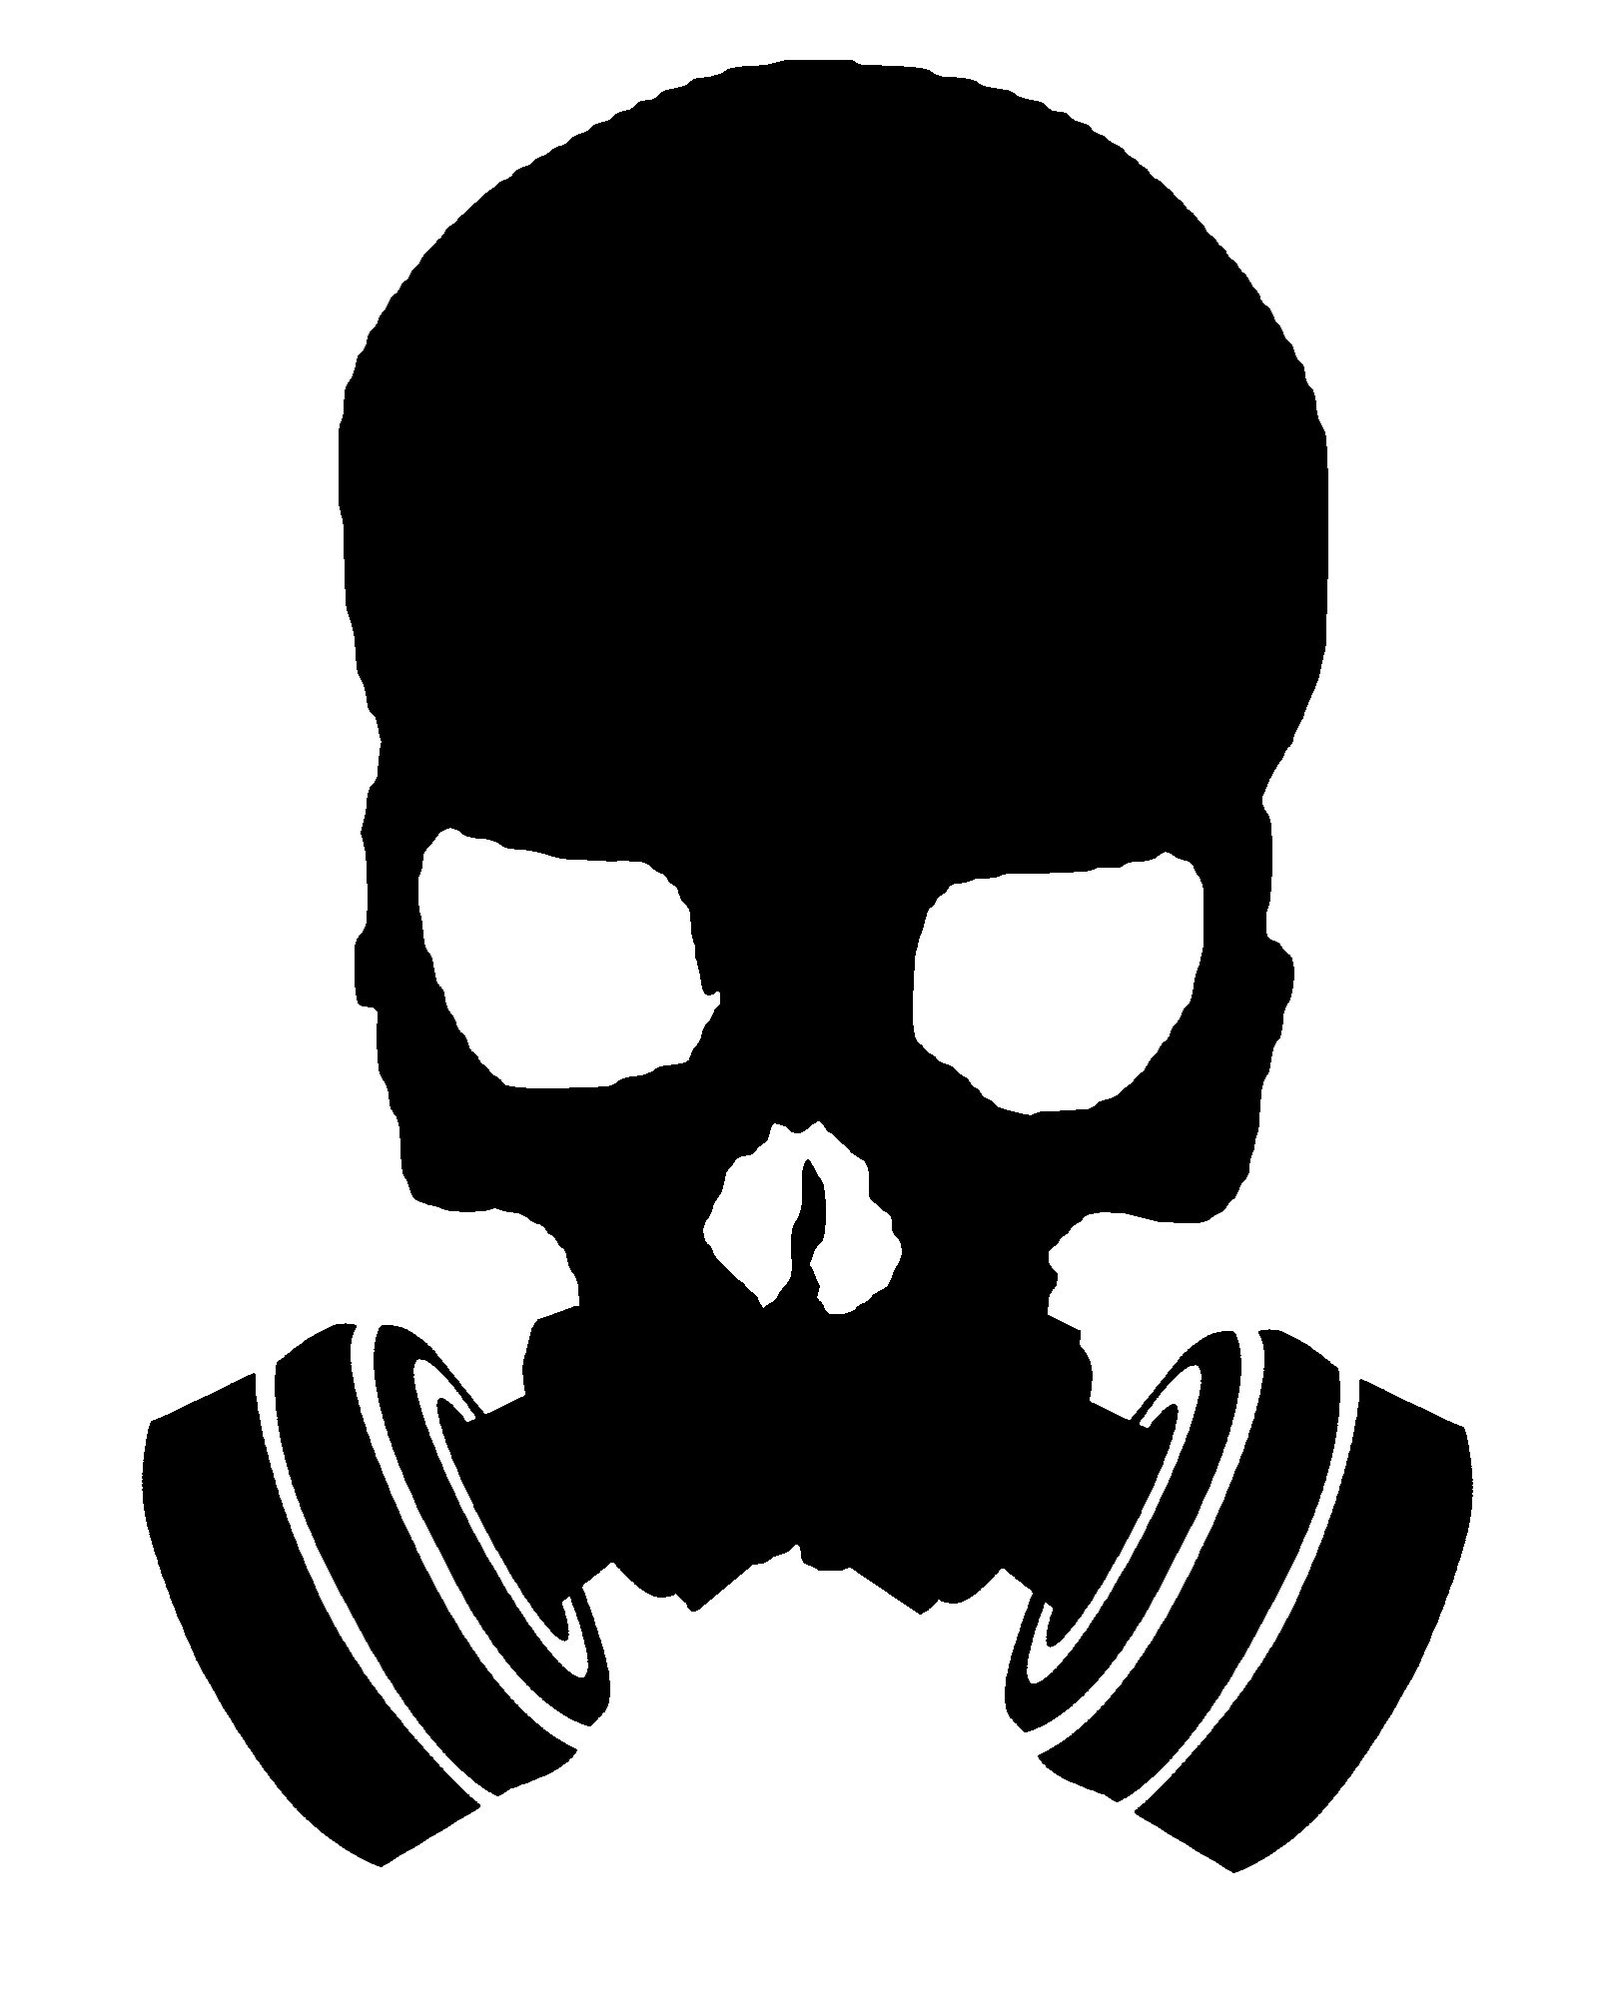 Gas Mask clipart – Gas Mask Art Gas